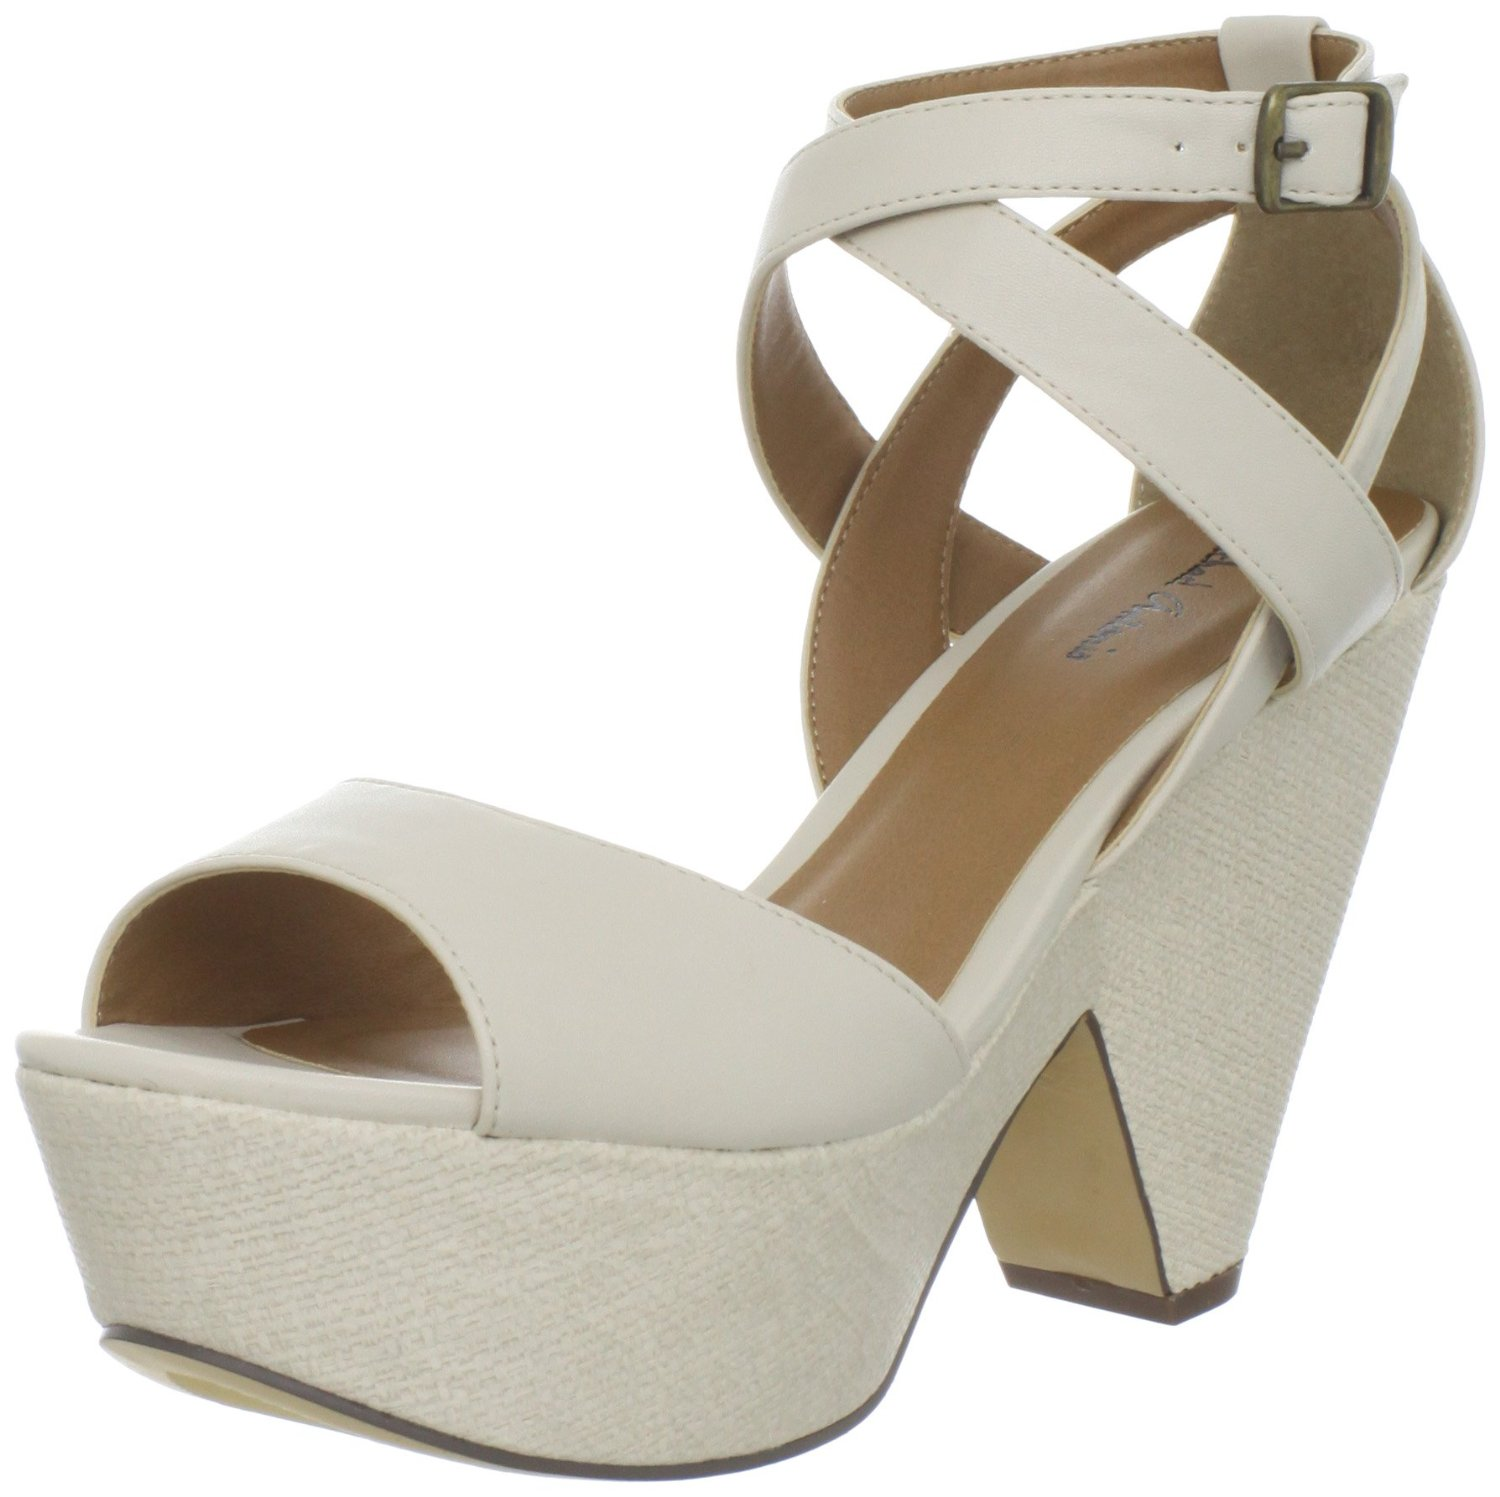 fashion trends michael antonio womens gota wedge sandals